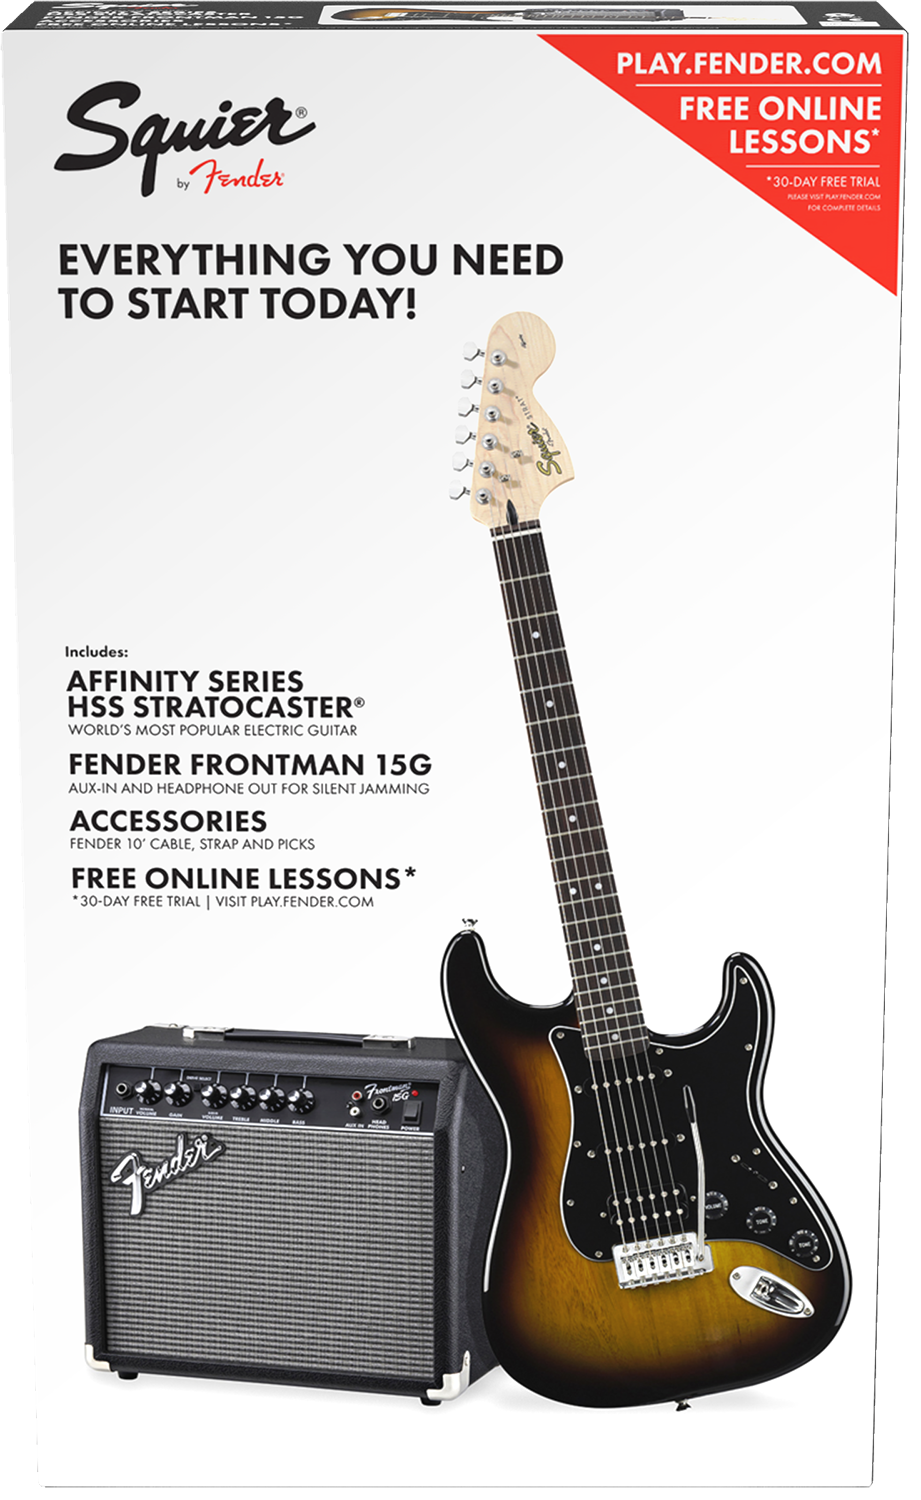 Home Central Music Jackson Js22 7 Wire Diagram The Squier Affinity Strat Pack Includes Everything You Need To Start Rocking Right Out Of Box Series Stratocaster Features A